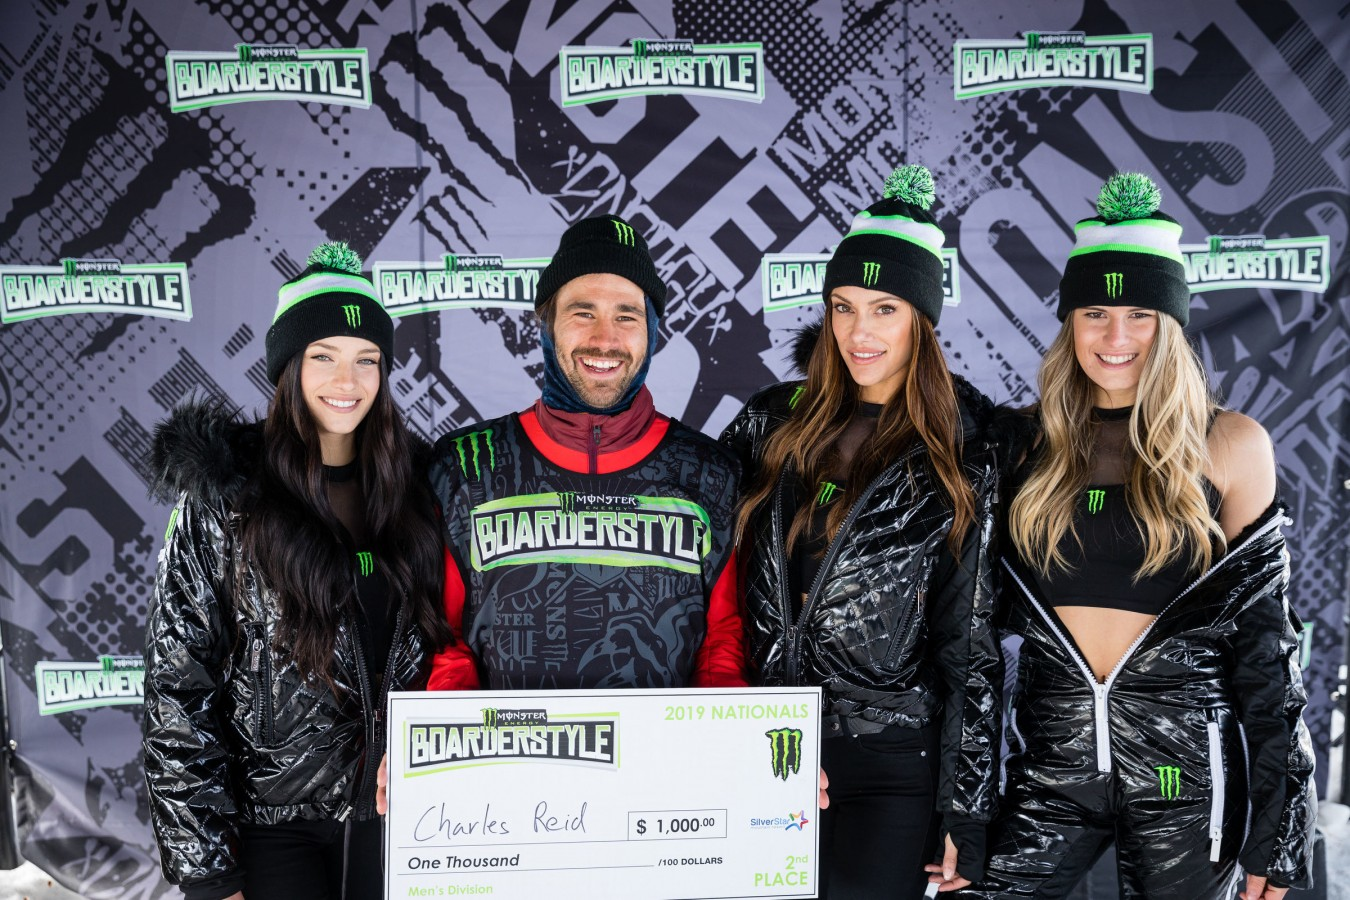 Shots from the Silverstar stop at the 2019 Boarderstyle Nationals